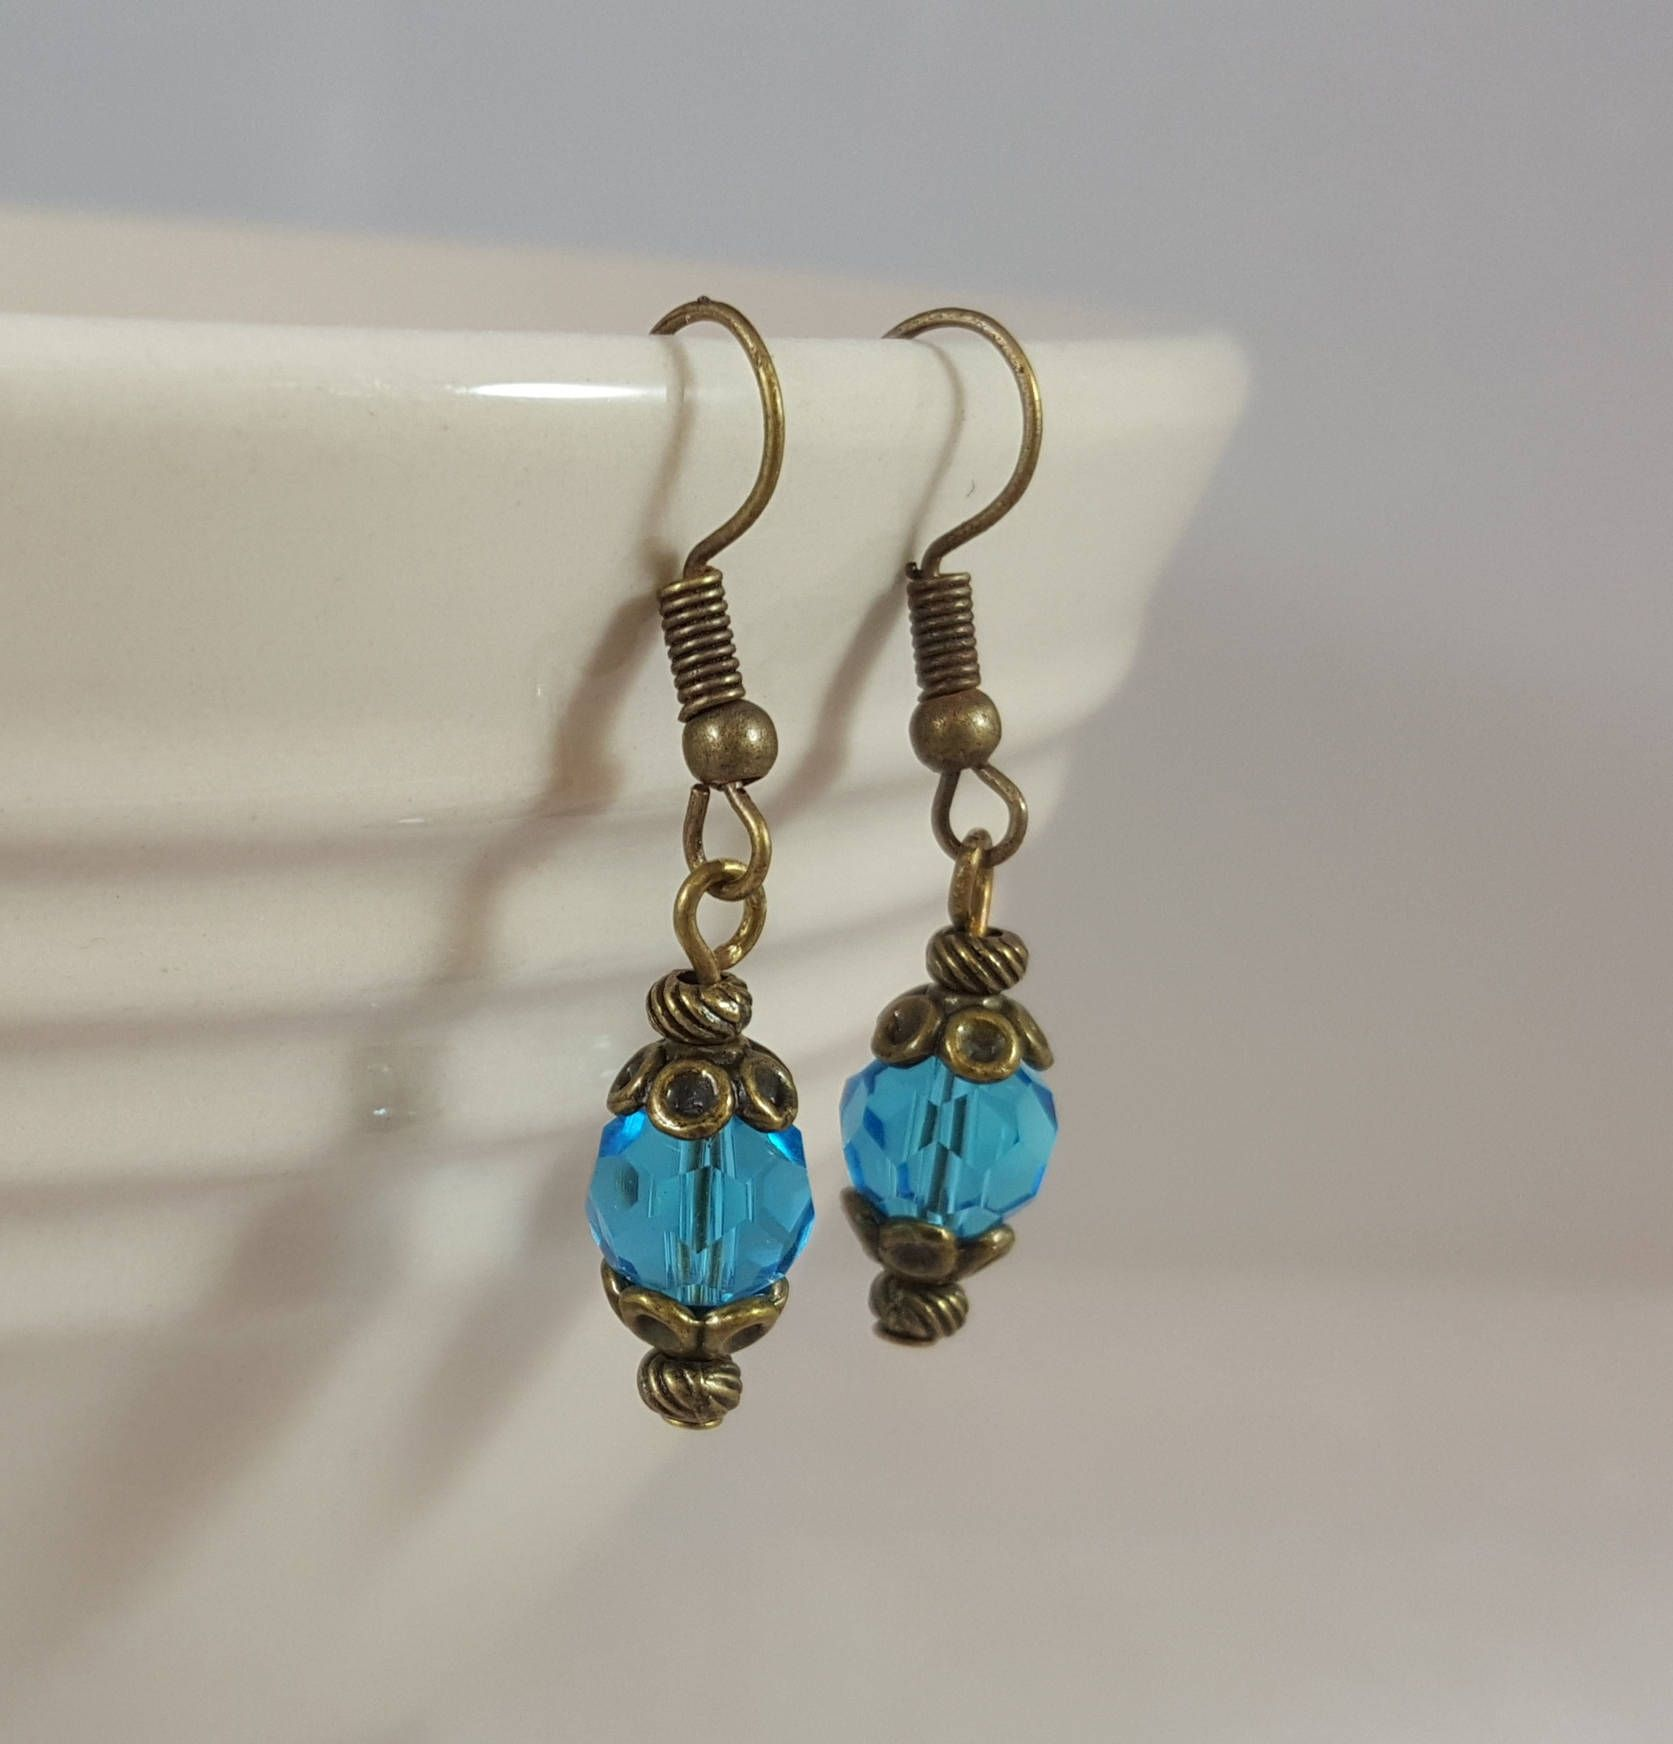 earrings judith jb bright london blue topaz lotus designer jewelry